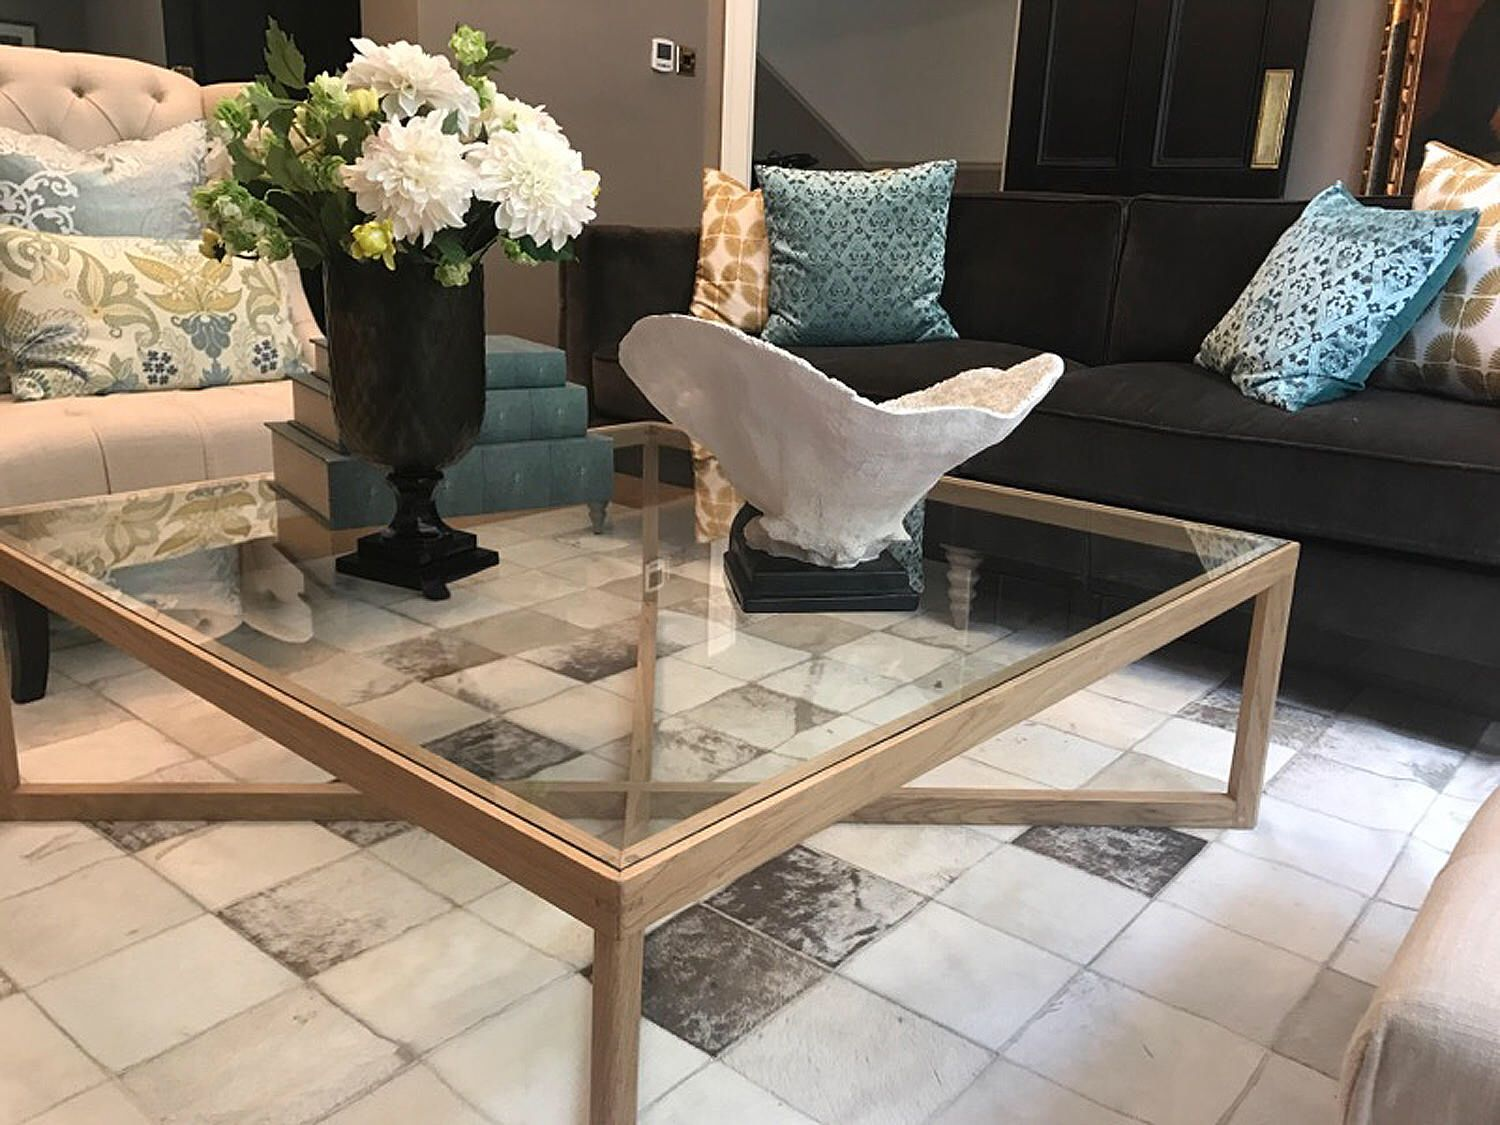 Scandinavian Retro Style Wood And Glass Coffee Table By Reclaimedbespoke On Etsy Https Www Etsy Com Listing Coffee Table Furniture Industrial Style Furniture [ 1125 x 1500 Pixel ]